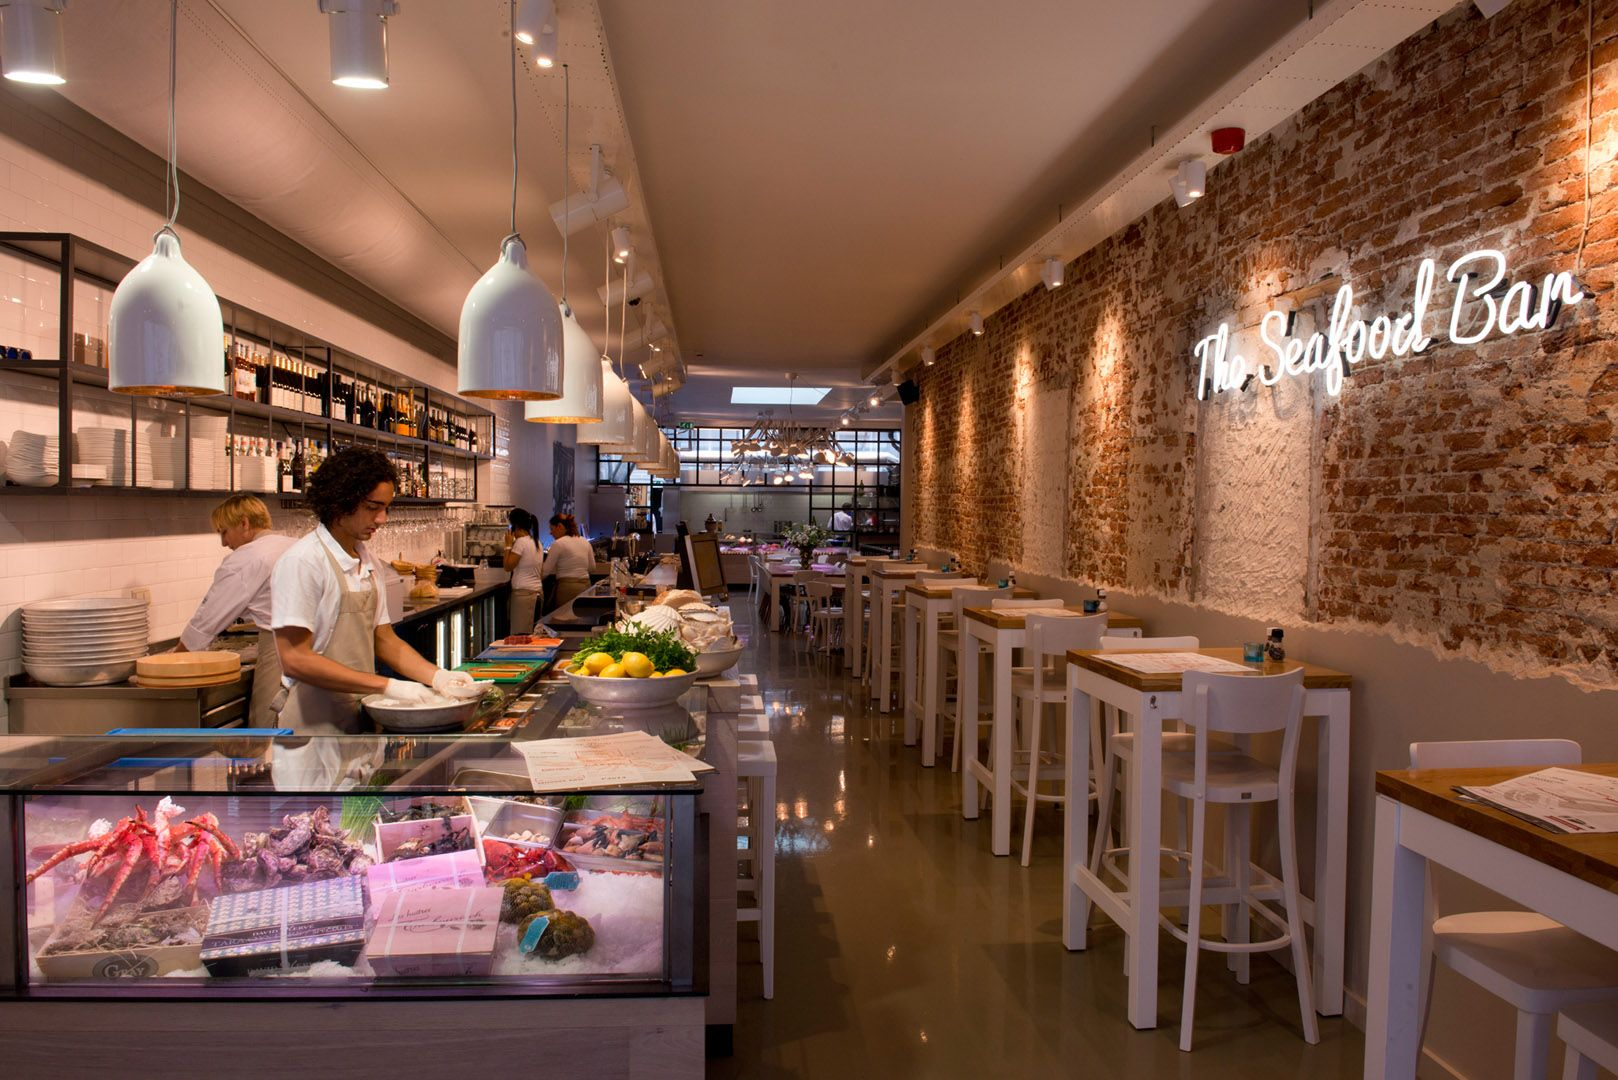 The Seafood Bar - Amsterdam Oud-Zuid | Interior: Restaurant ...